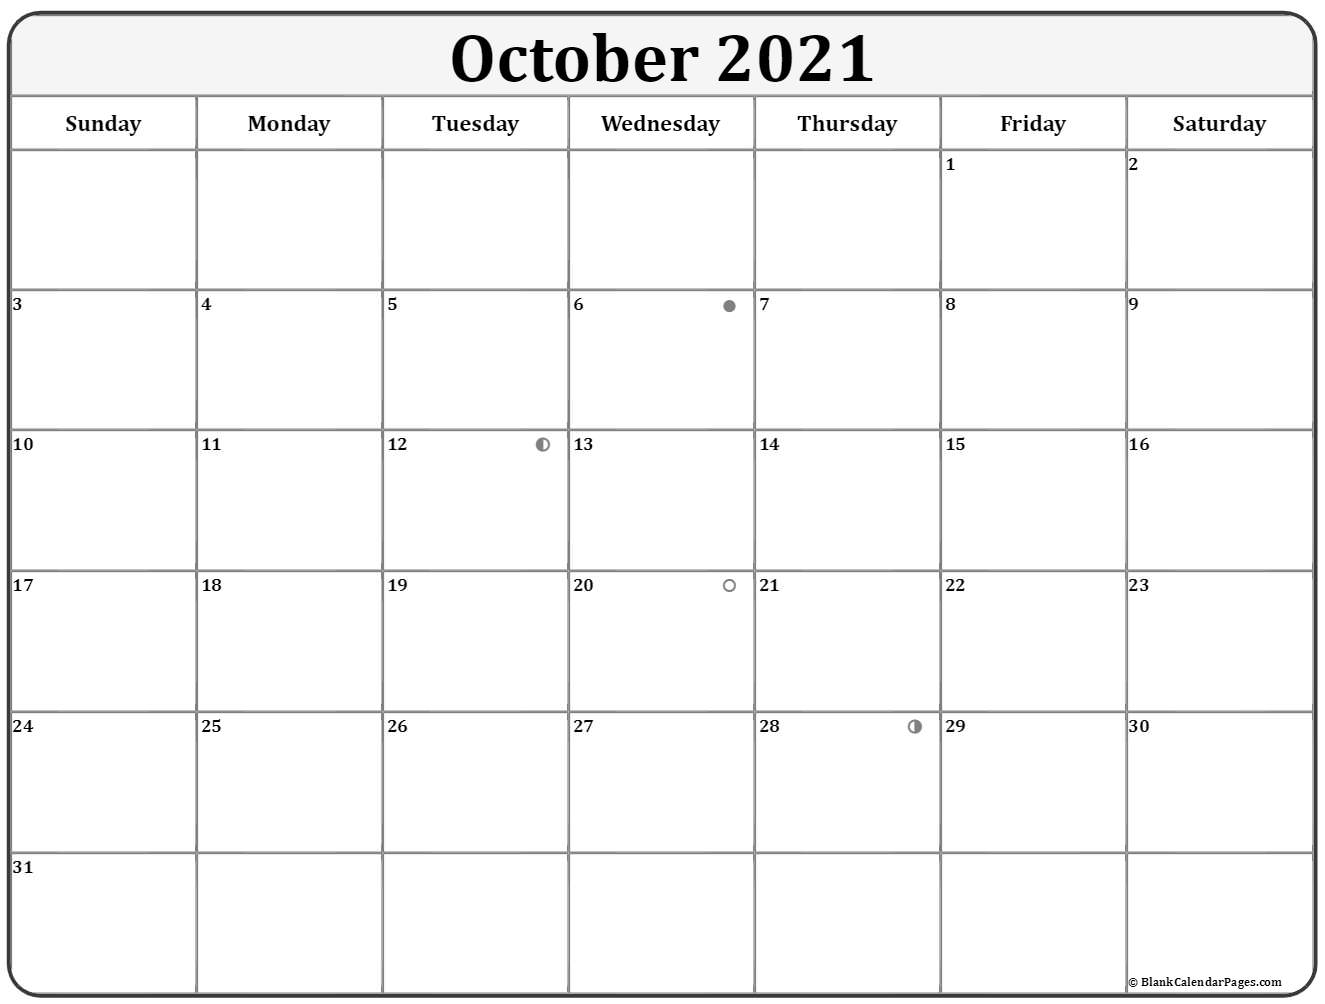 October 2021 moon phase calendar. lunar calendar